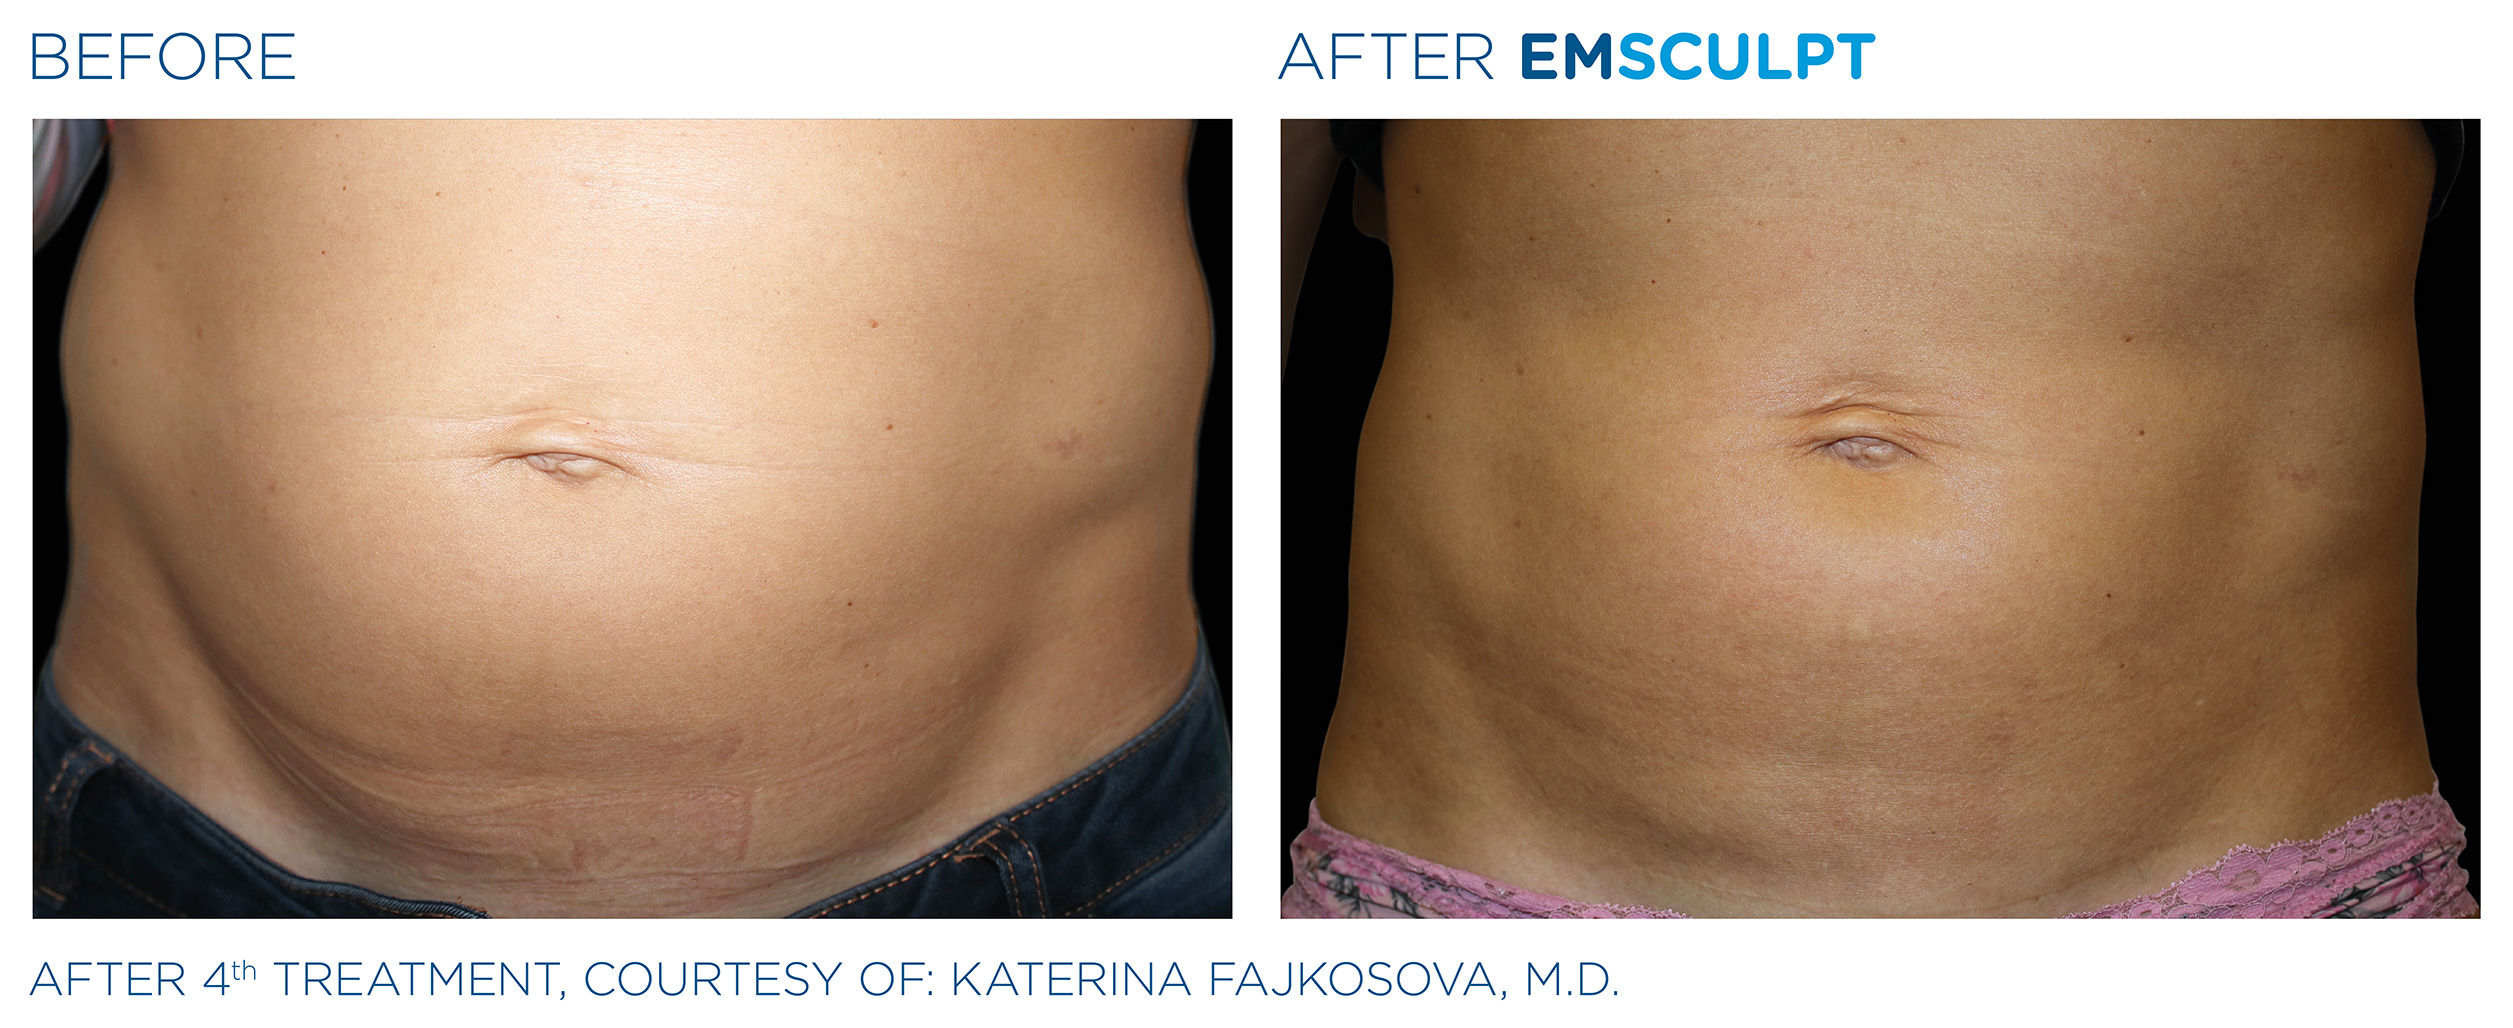 EMSCULPT Before & After Photos | Abdomen 4